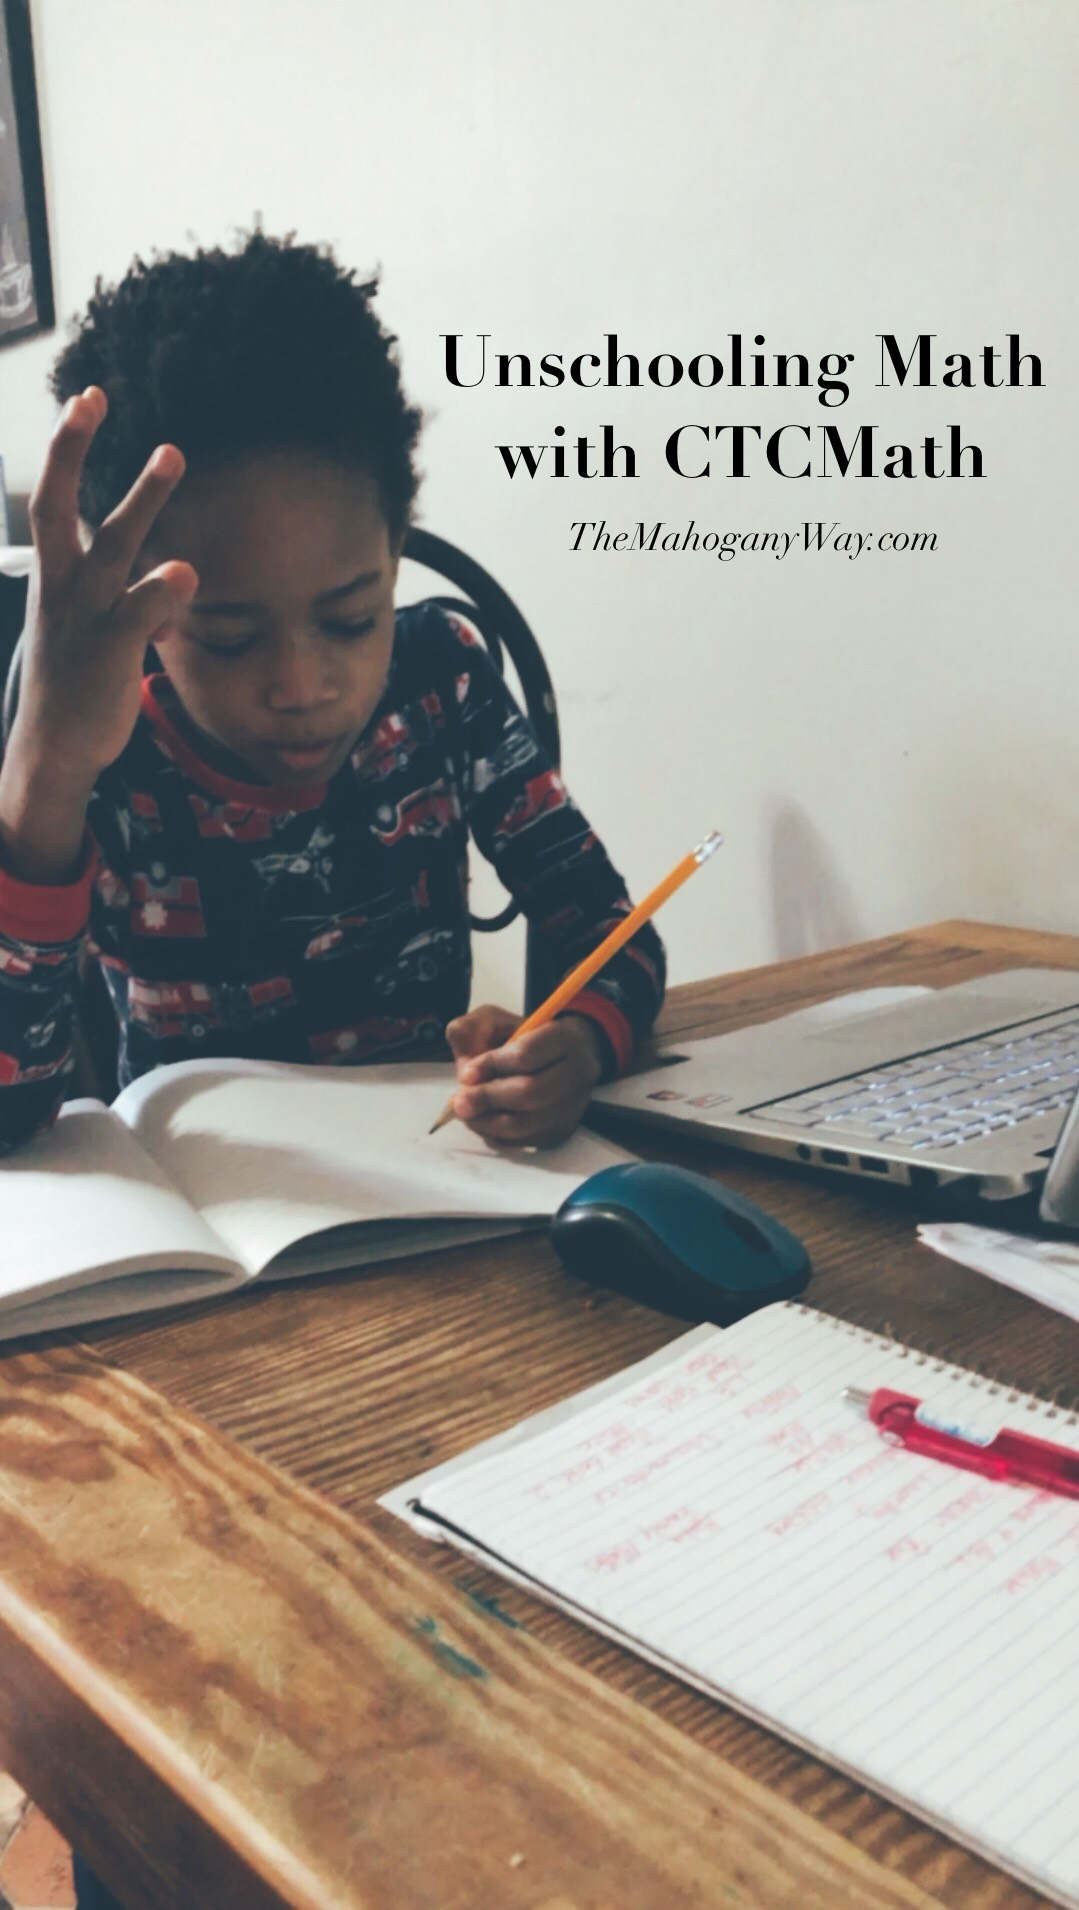 Unschooling Math with CTCMath